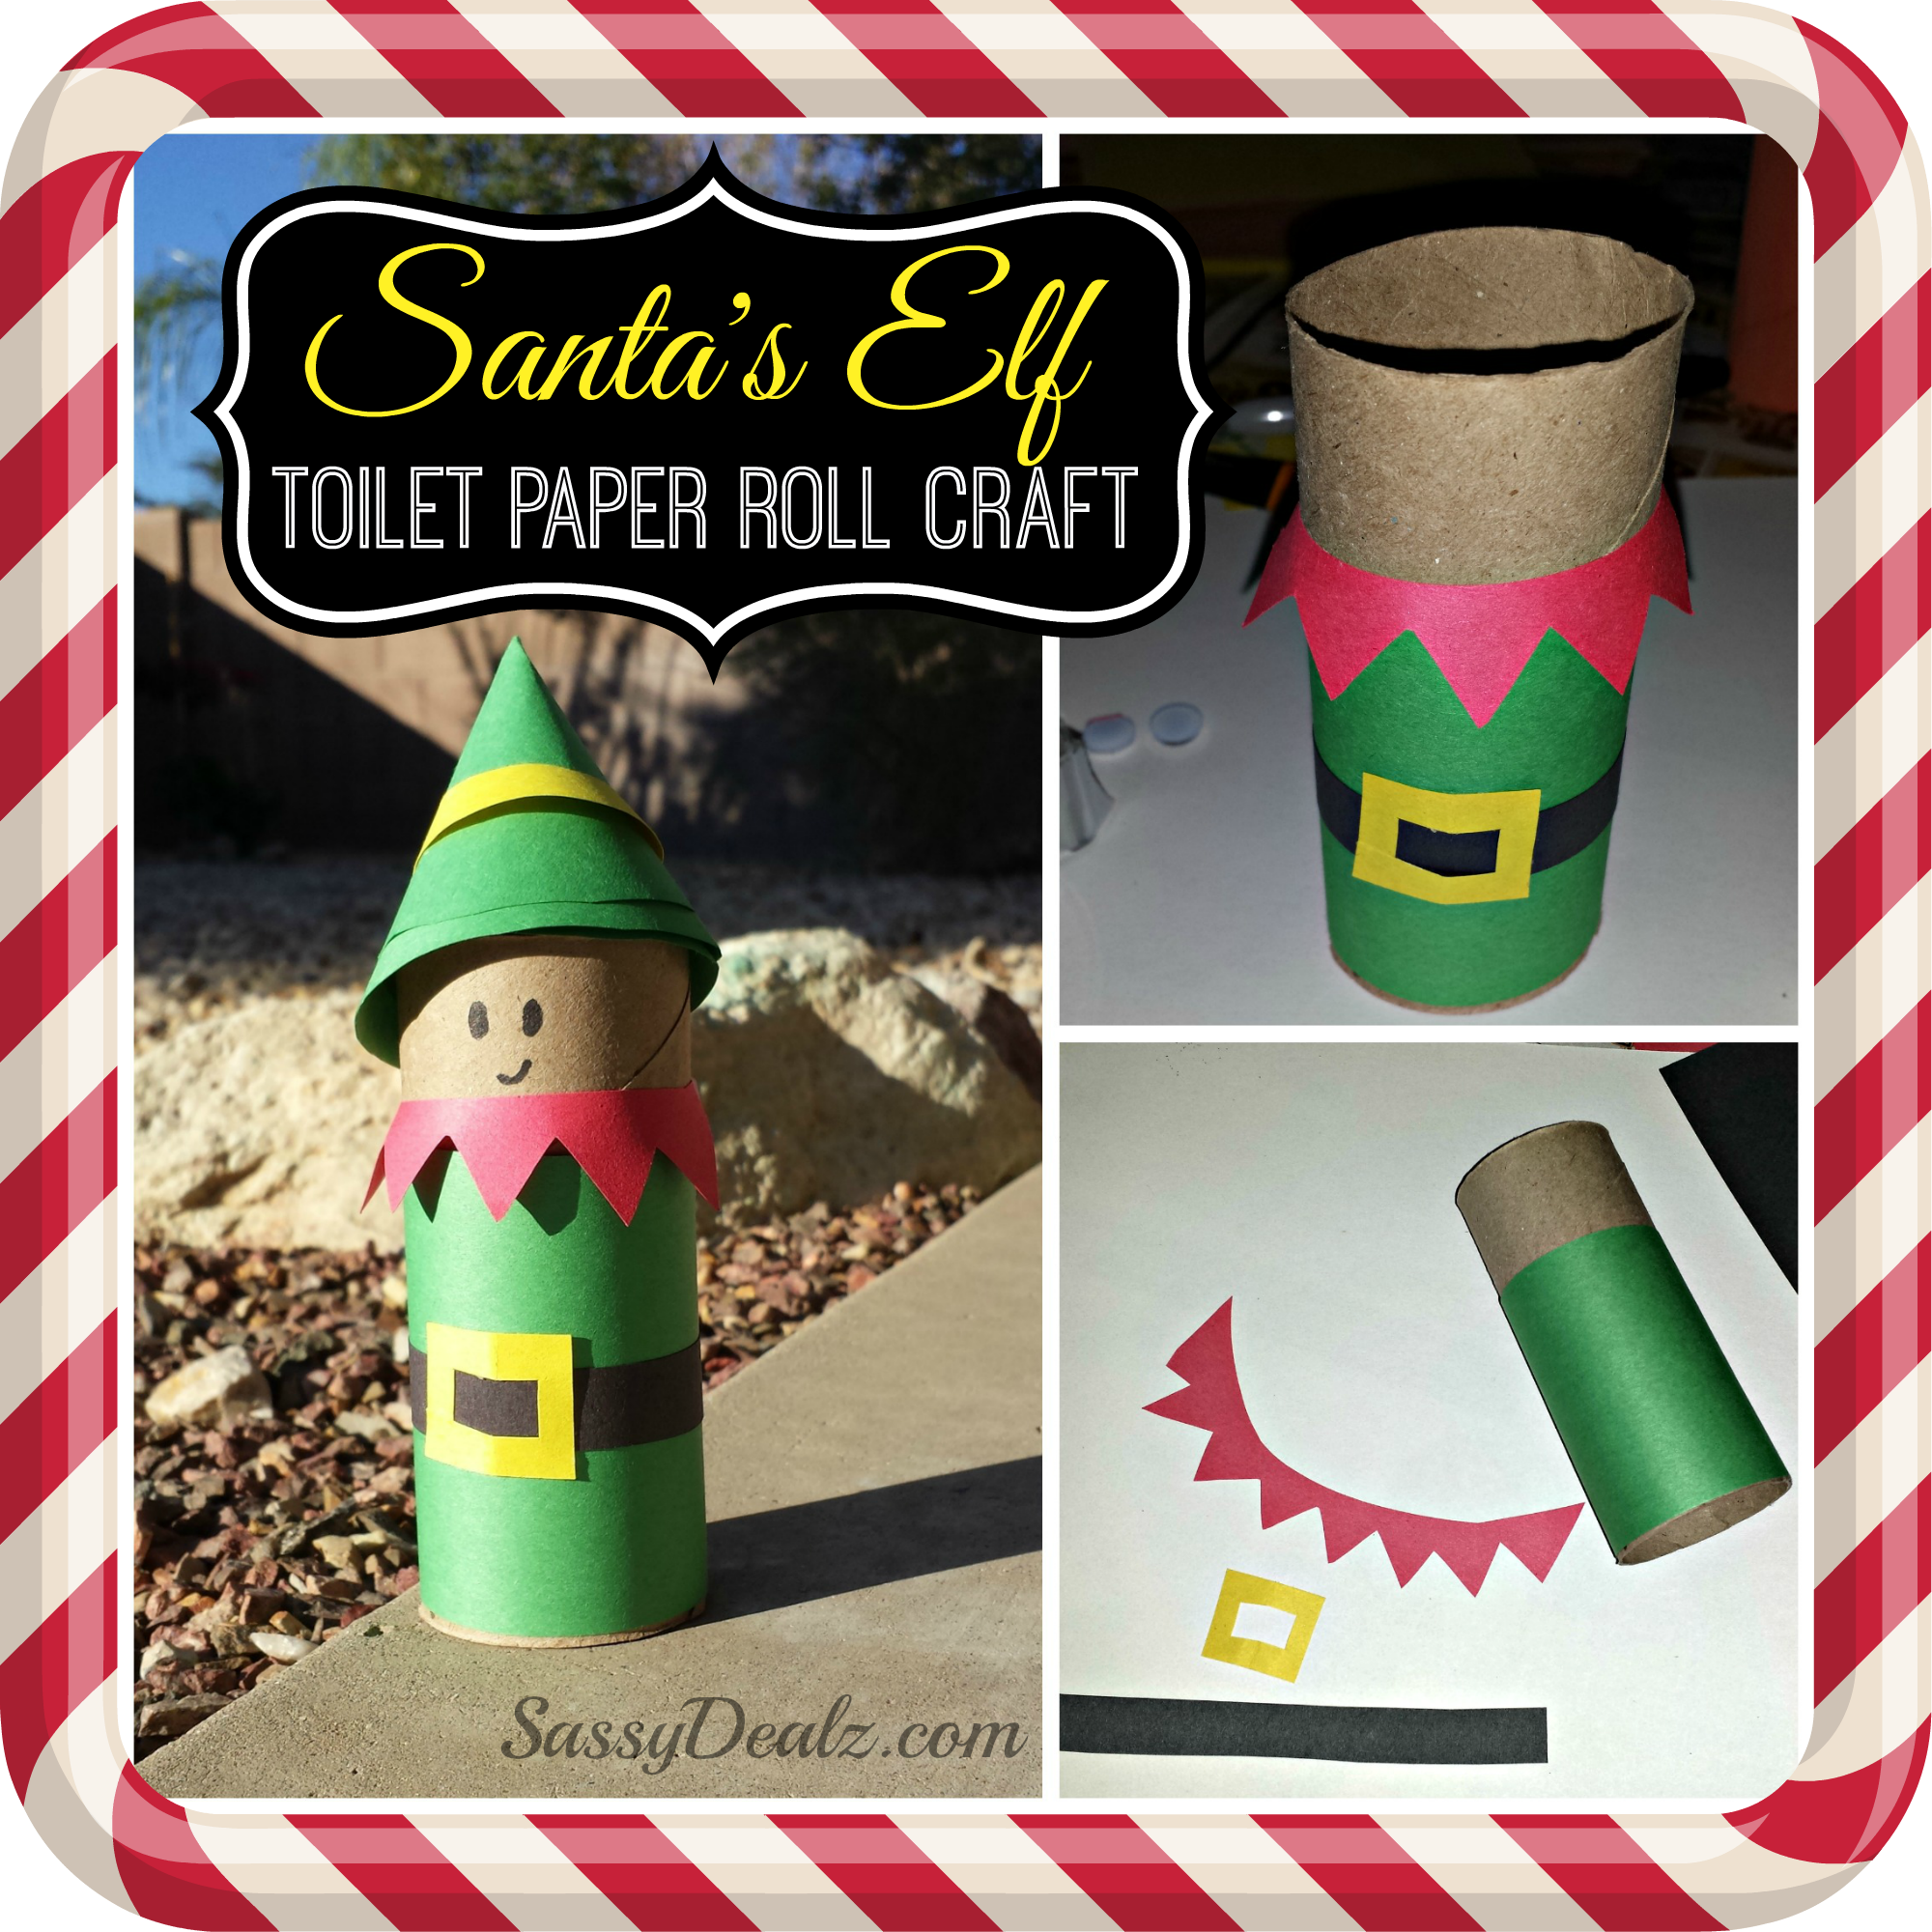 42+ Crafts with toilet paper rolls christmas ideas in 2021